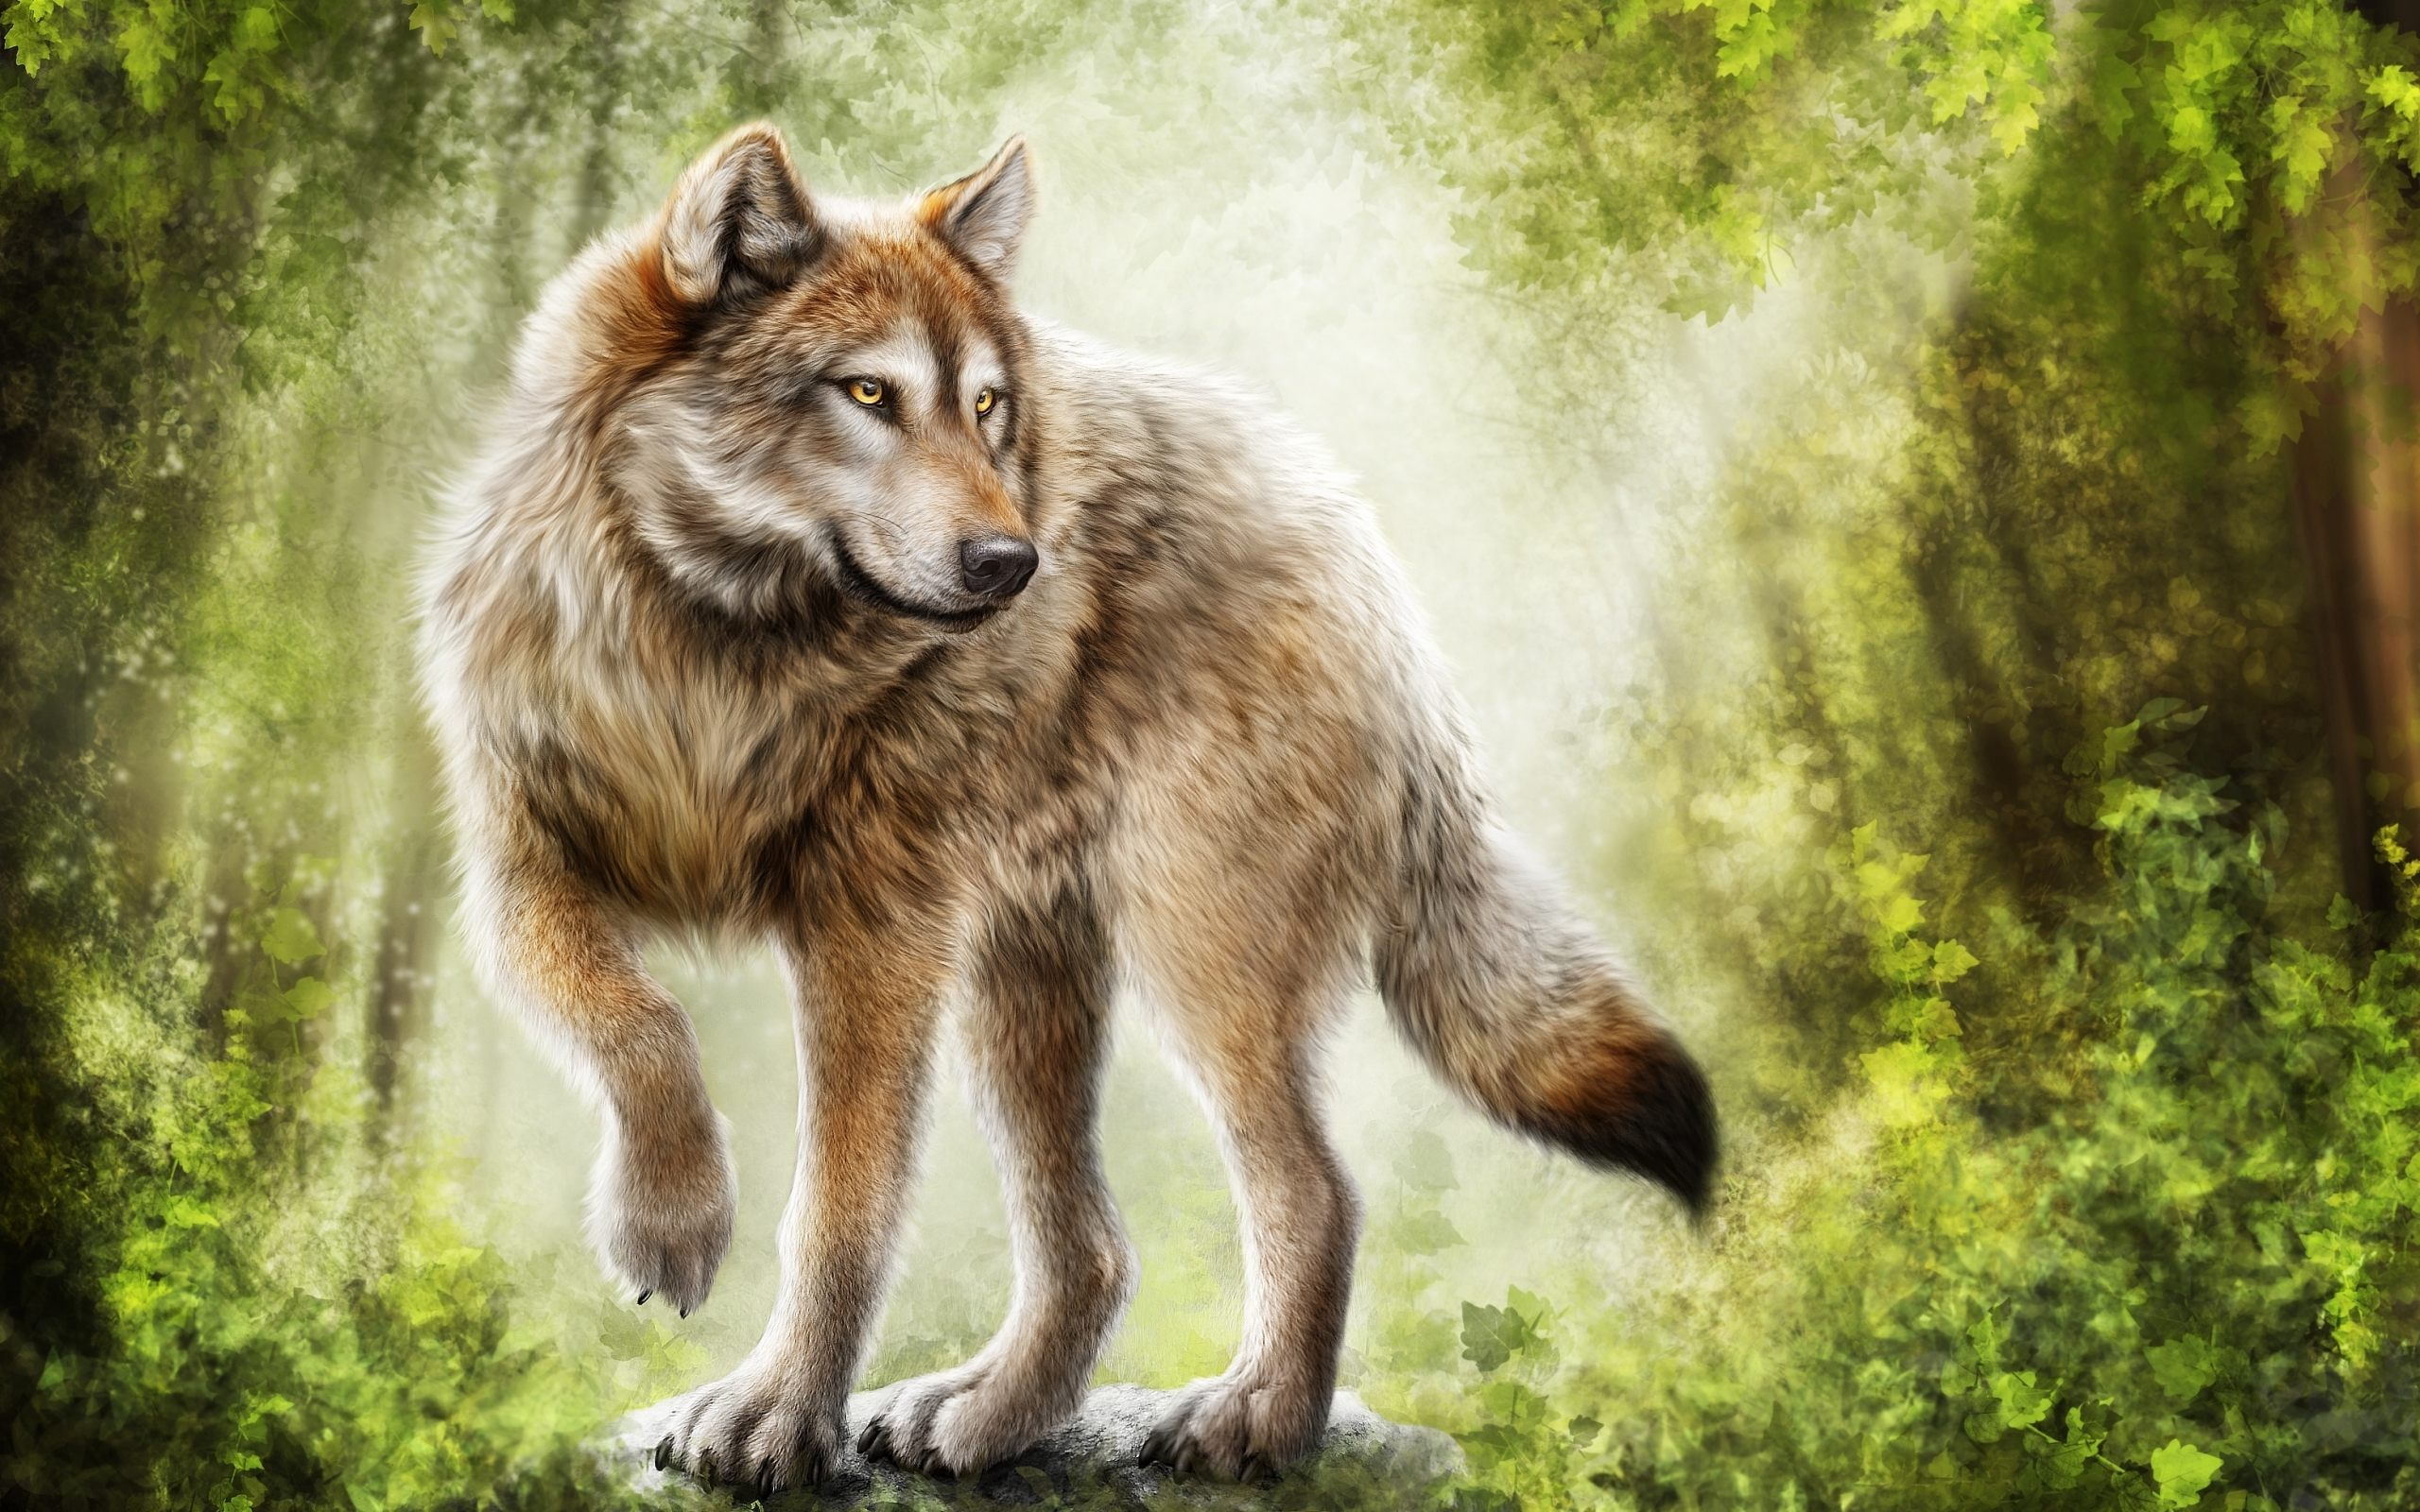 Gray Wolf Wallpapers FSX52 HDQ Cover Wallpapers For 2560x1600